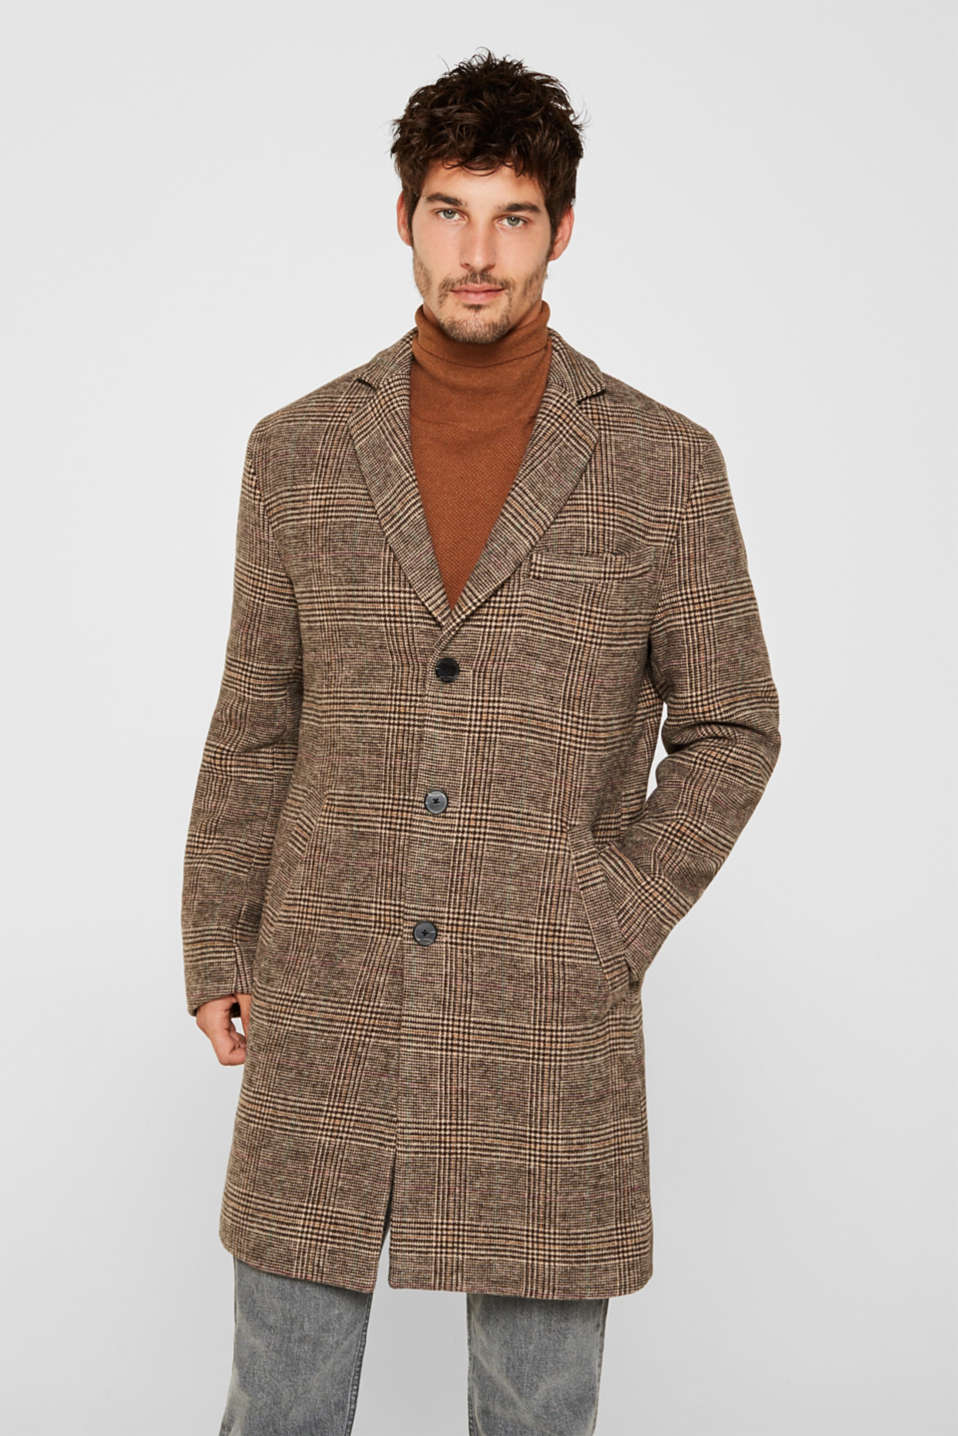 Esprit - Wool blend: coat with a Prince of Wales check design